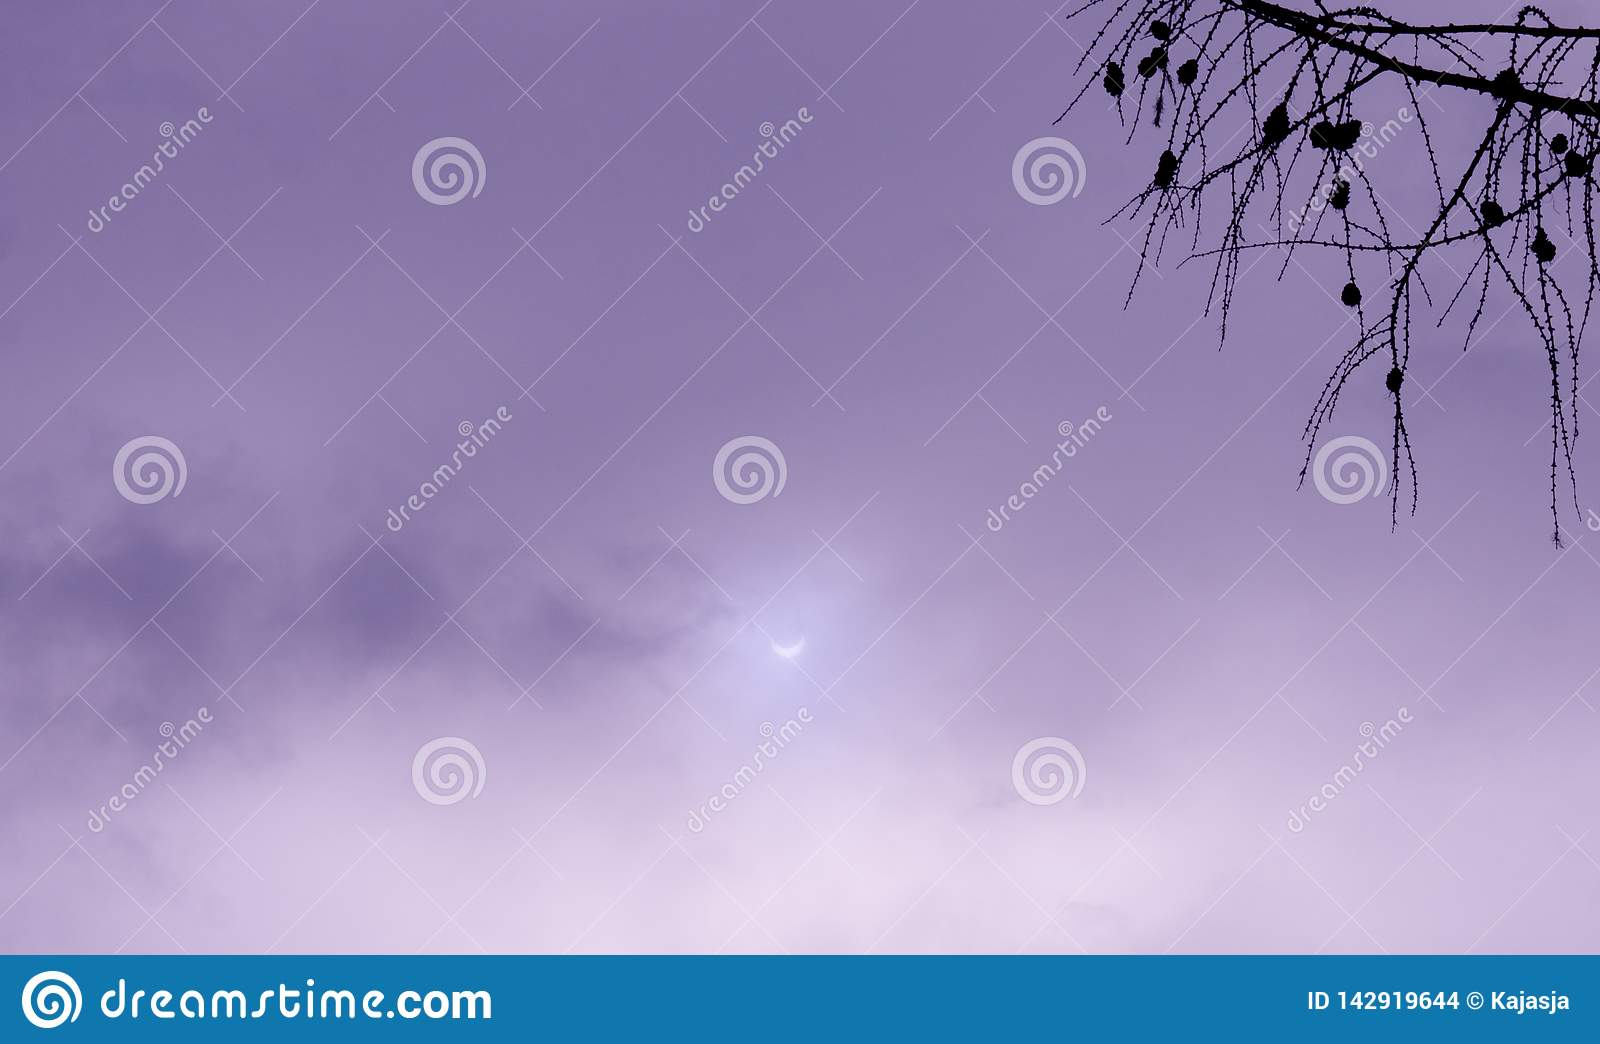 Real Solar Eclipse violet photo sky with branch